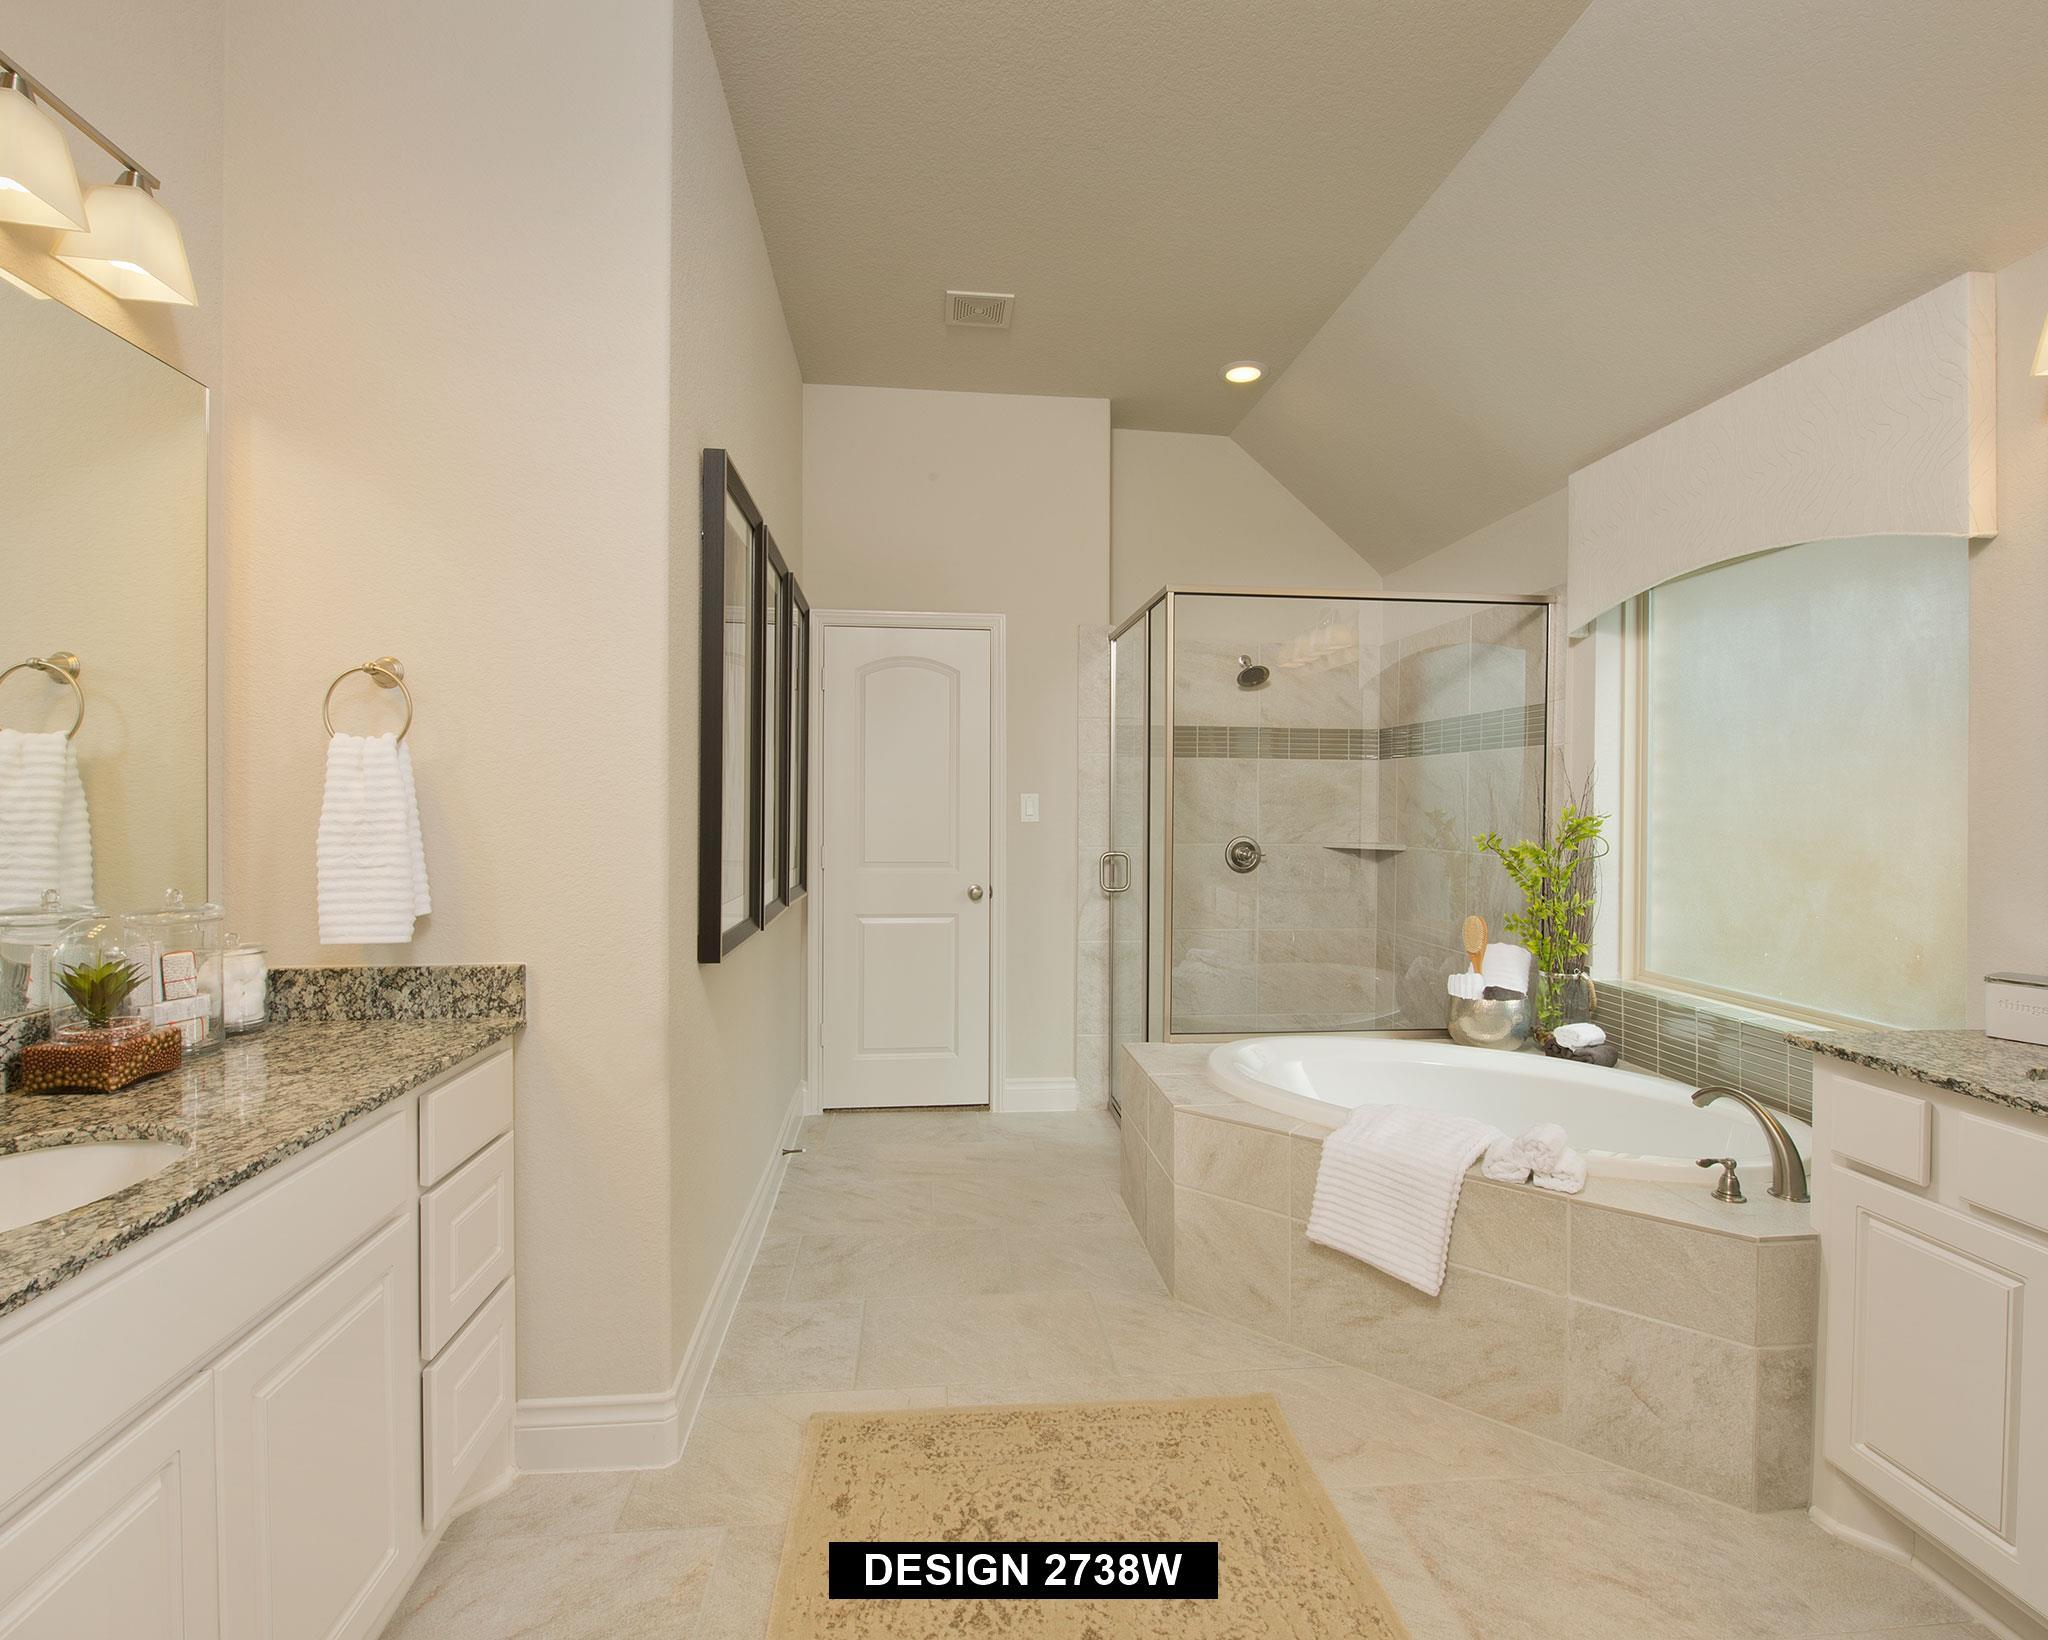 Bathroom featured in the 2738W By Perry Homes in Houston, TX